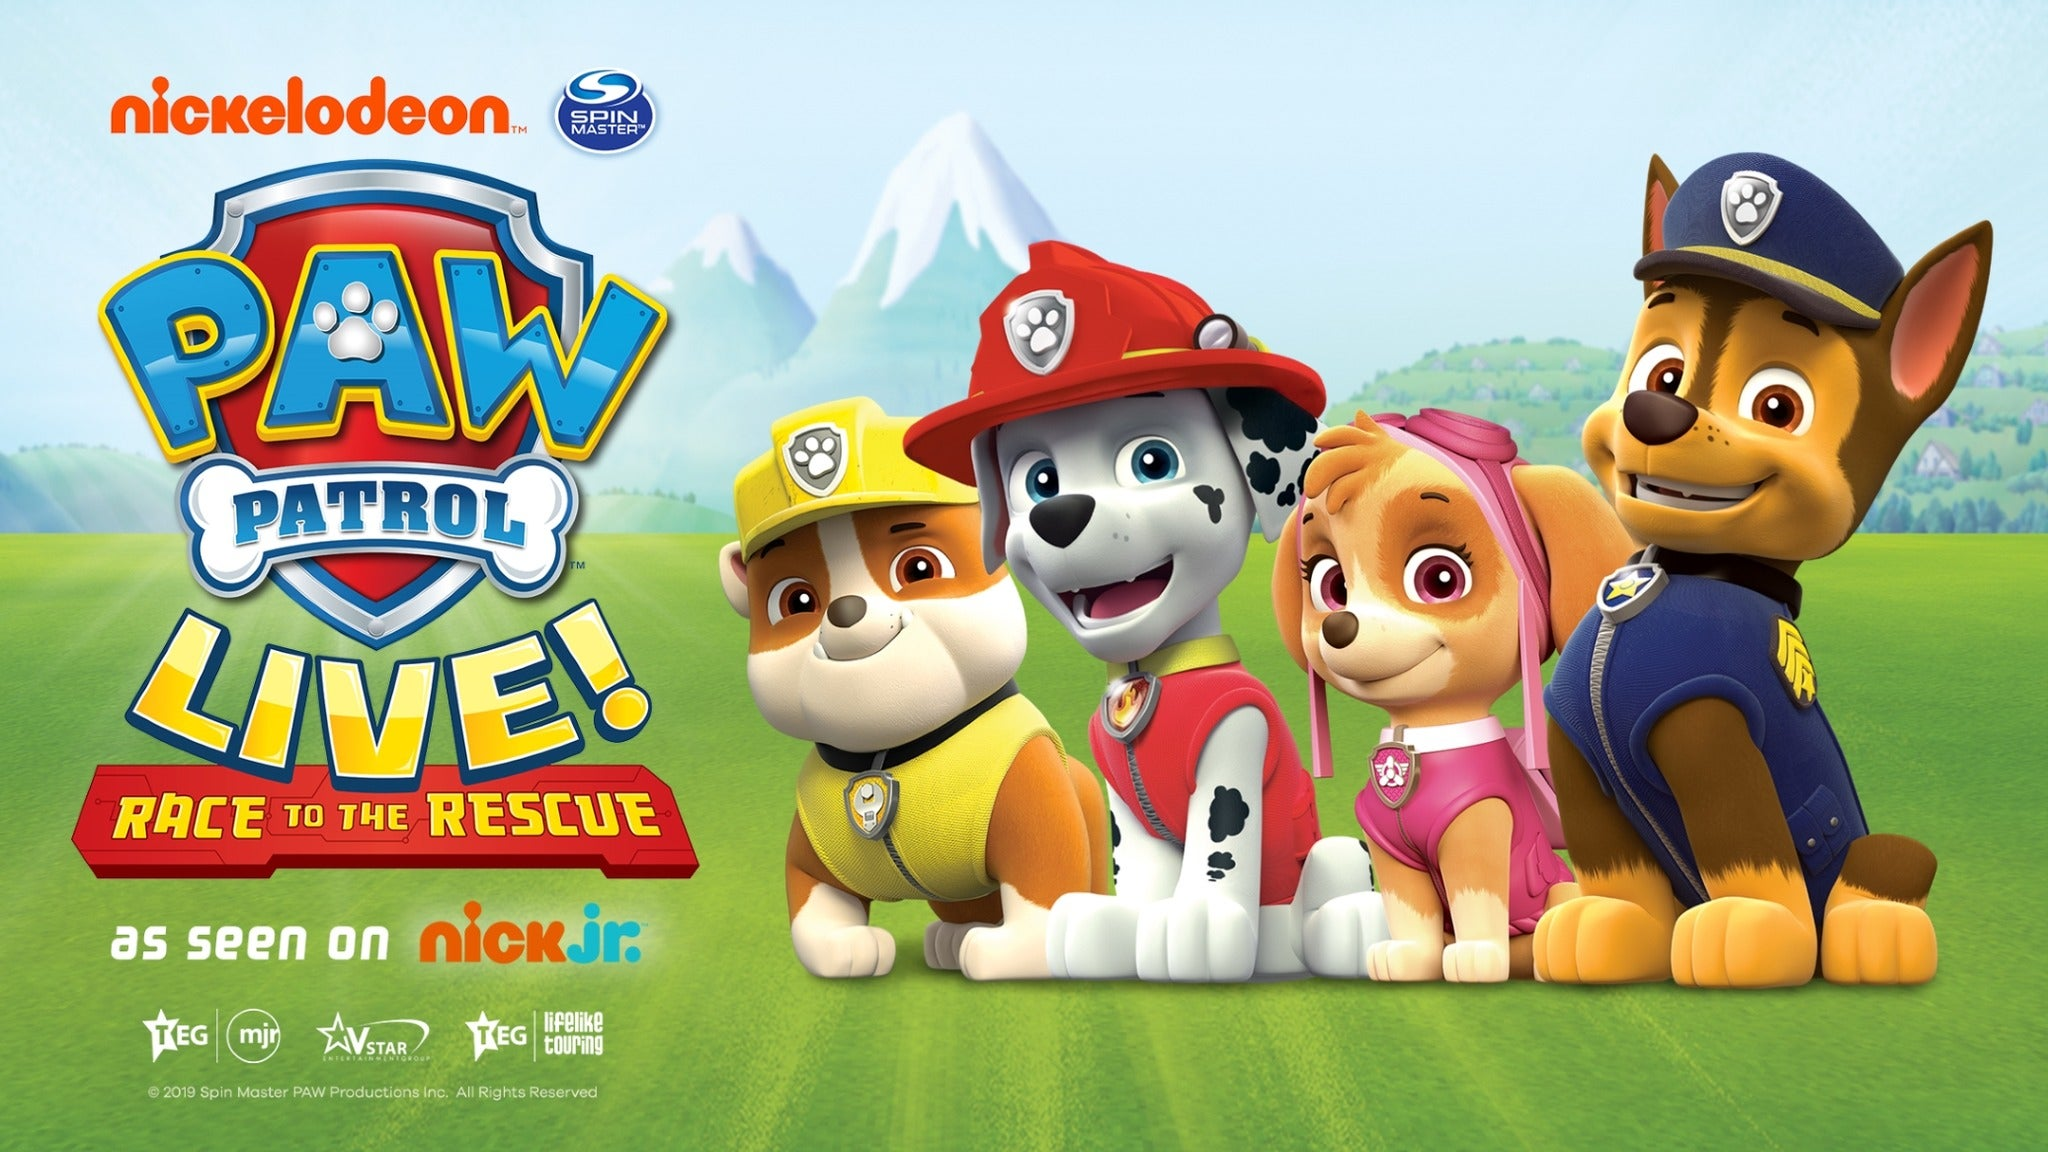 Paw Patrol - Race To the Rescue Seating Plan SSE Arena Wembley